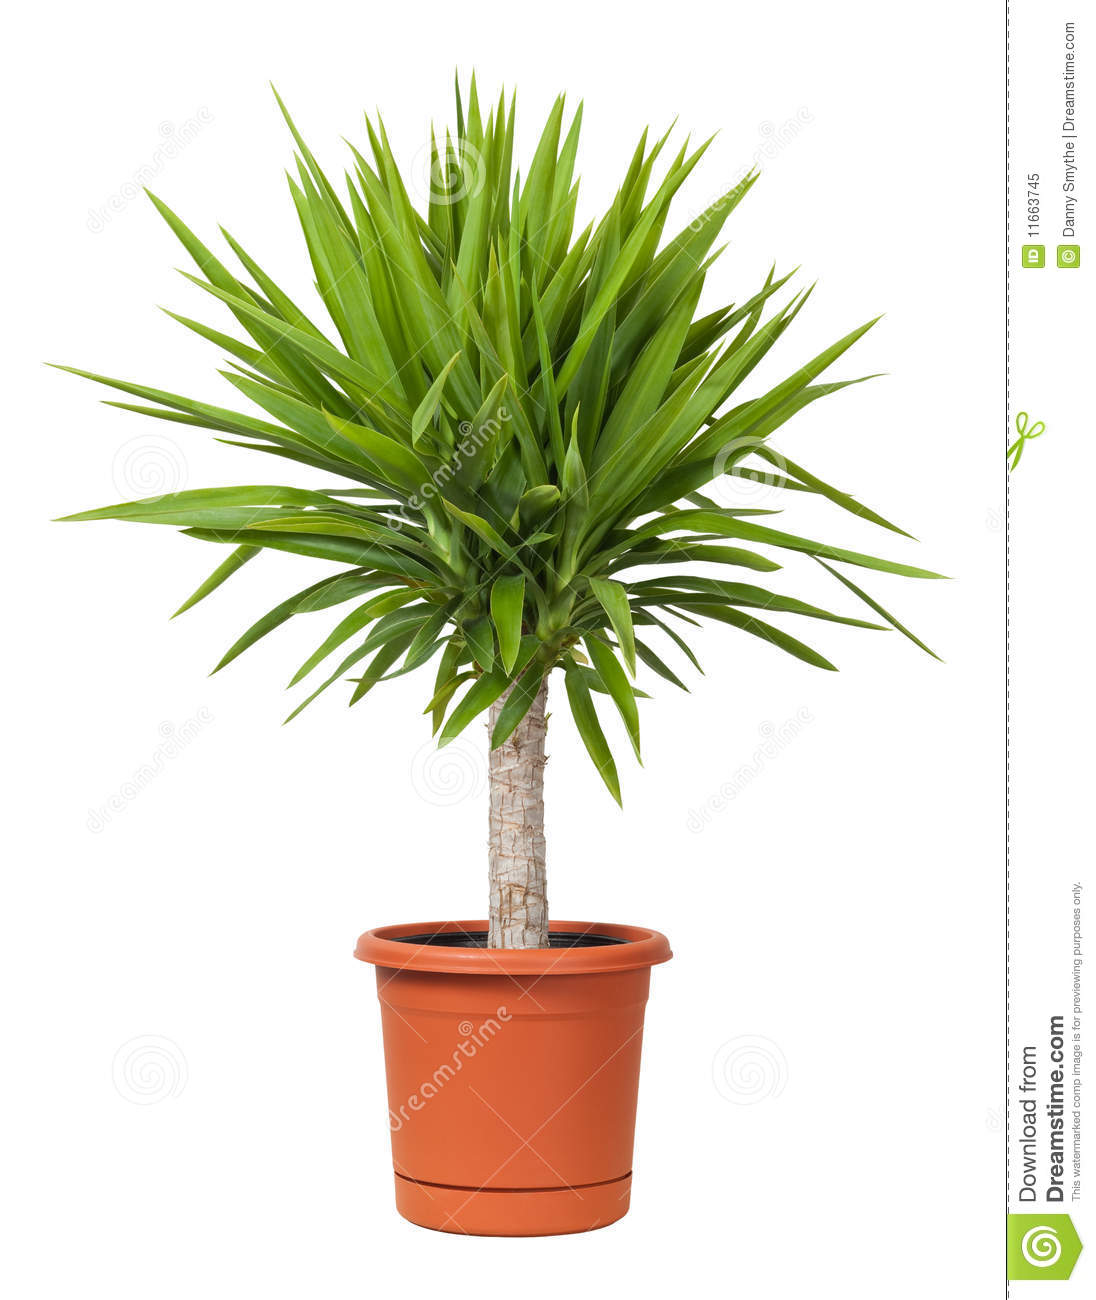 Yucca Potted Plant Isolated Stock Image - Image of flora, plant ... for Plant Transparent Png  545xkb